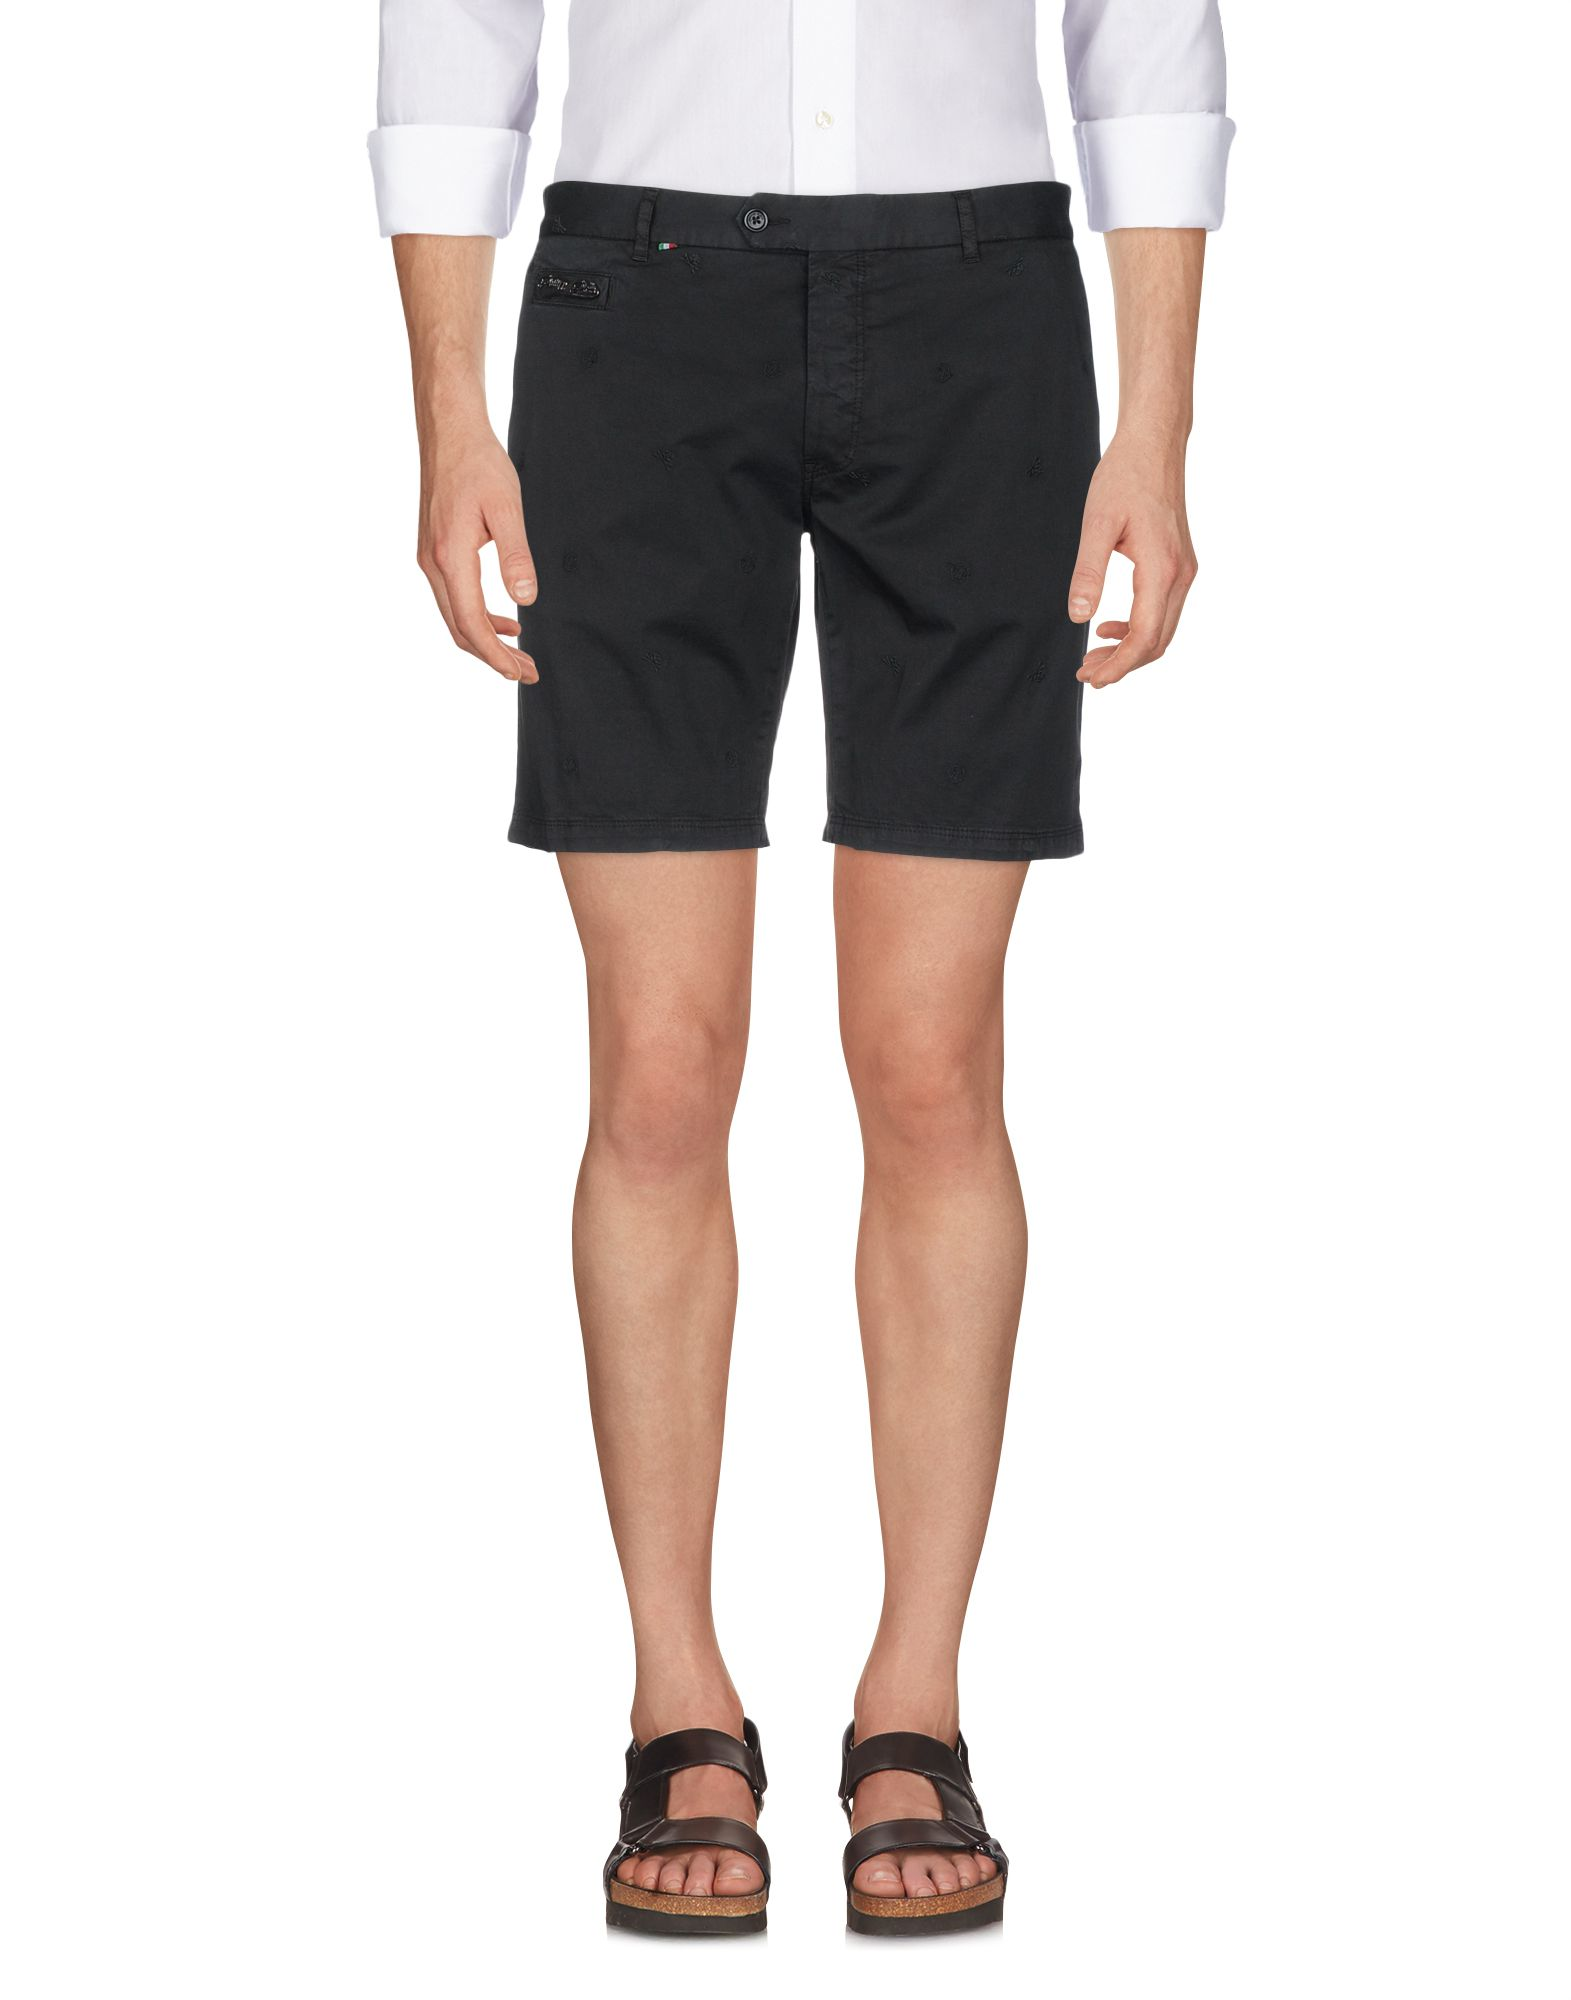 Shorts Philipp Plein Uomo - Acquista online su